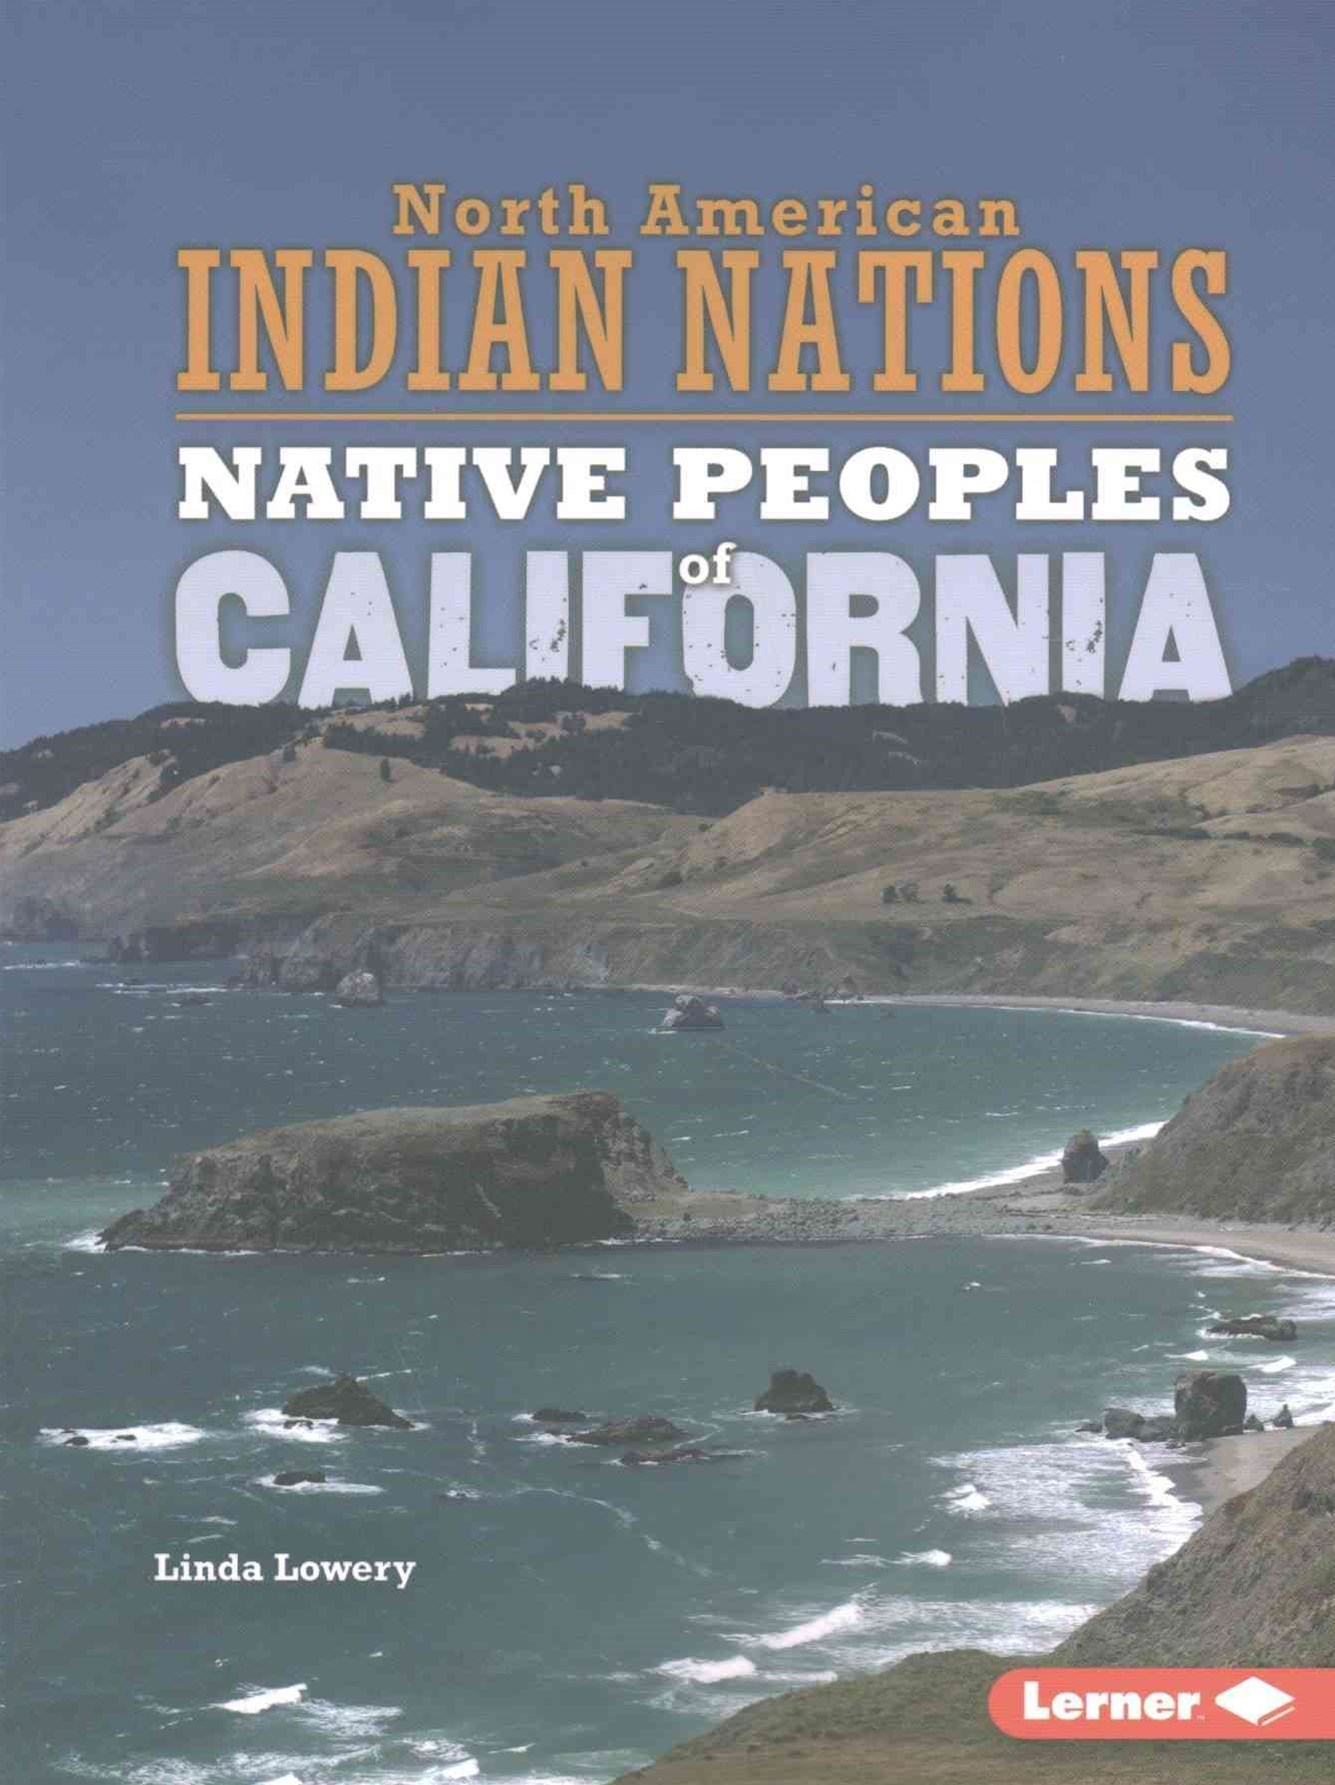 California - Native Peoples - North American Indian Nations